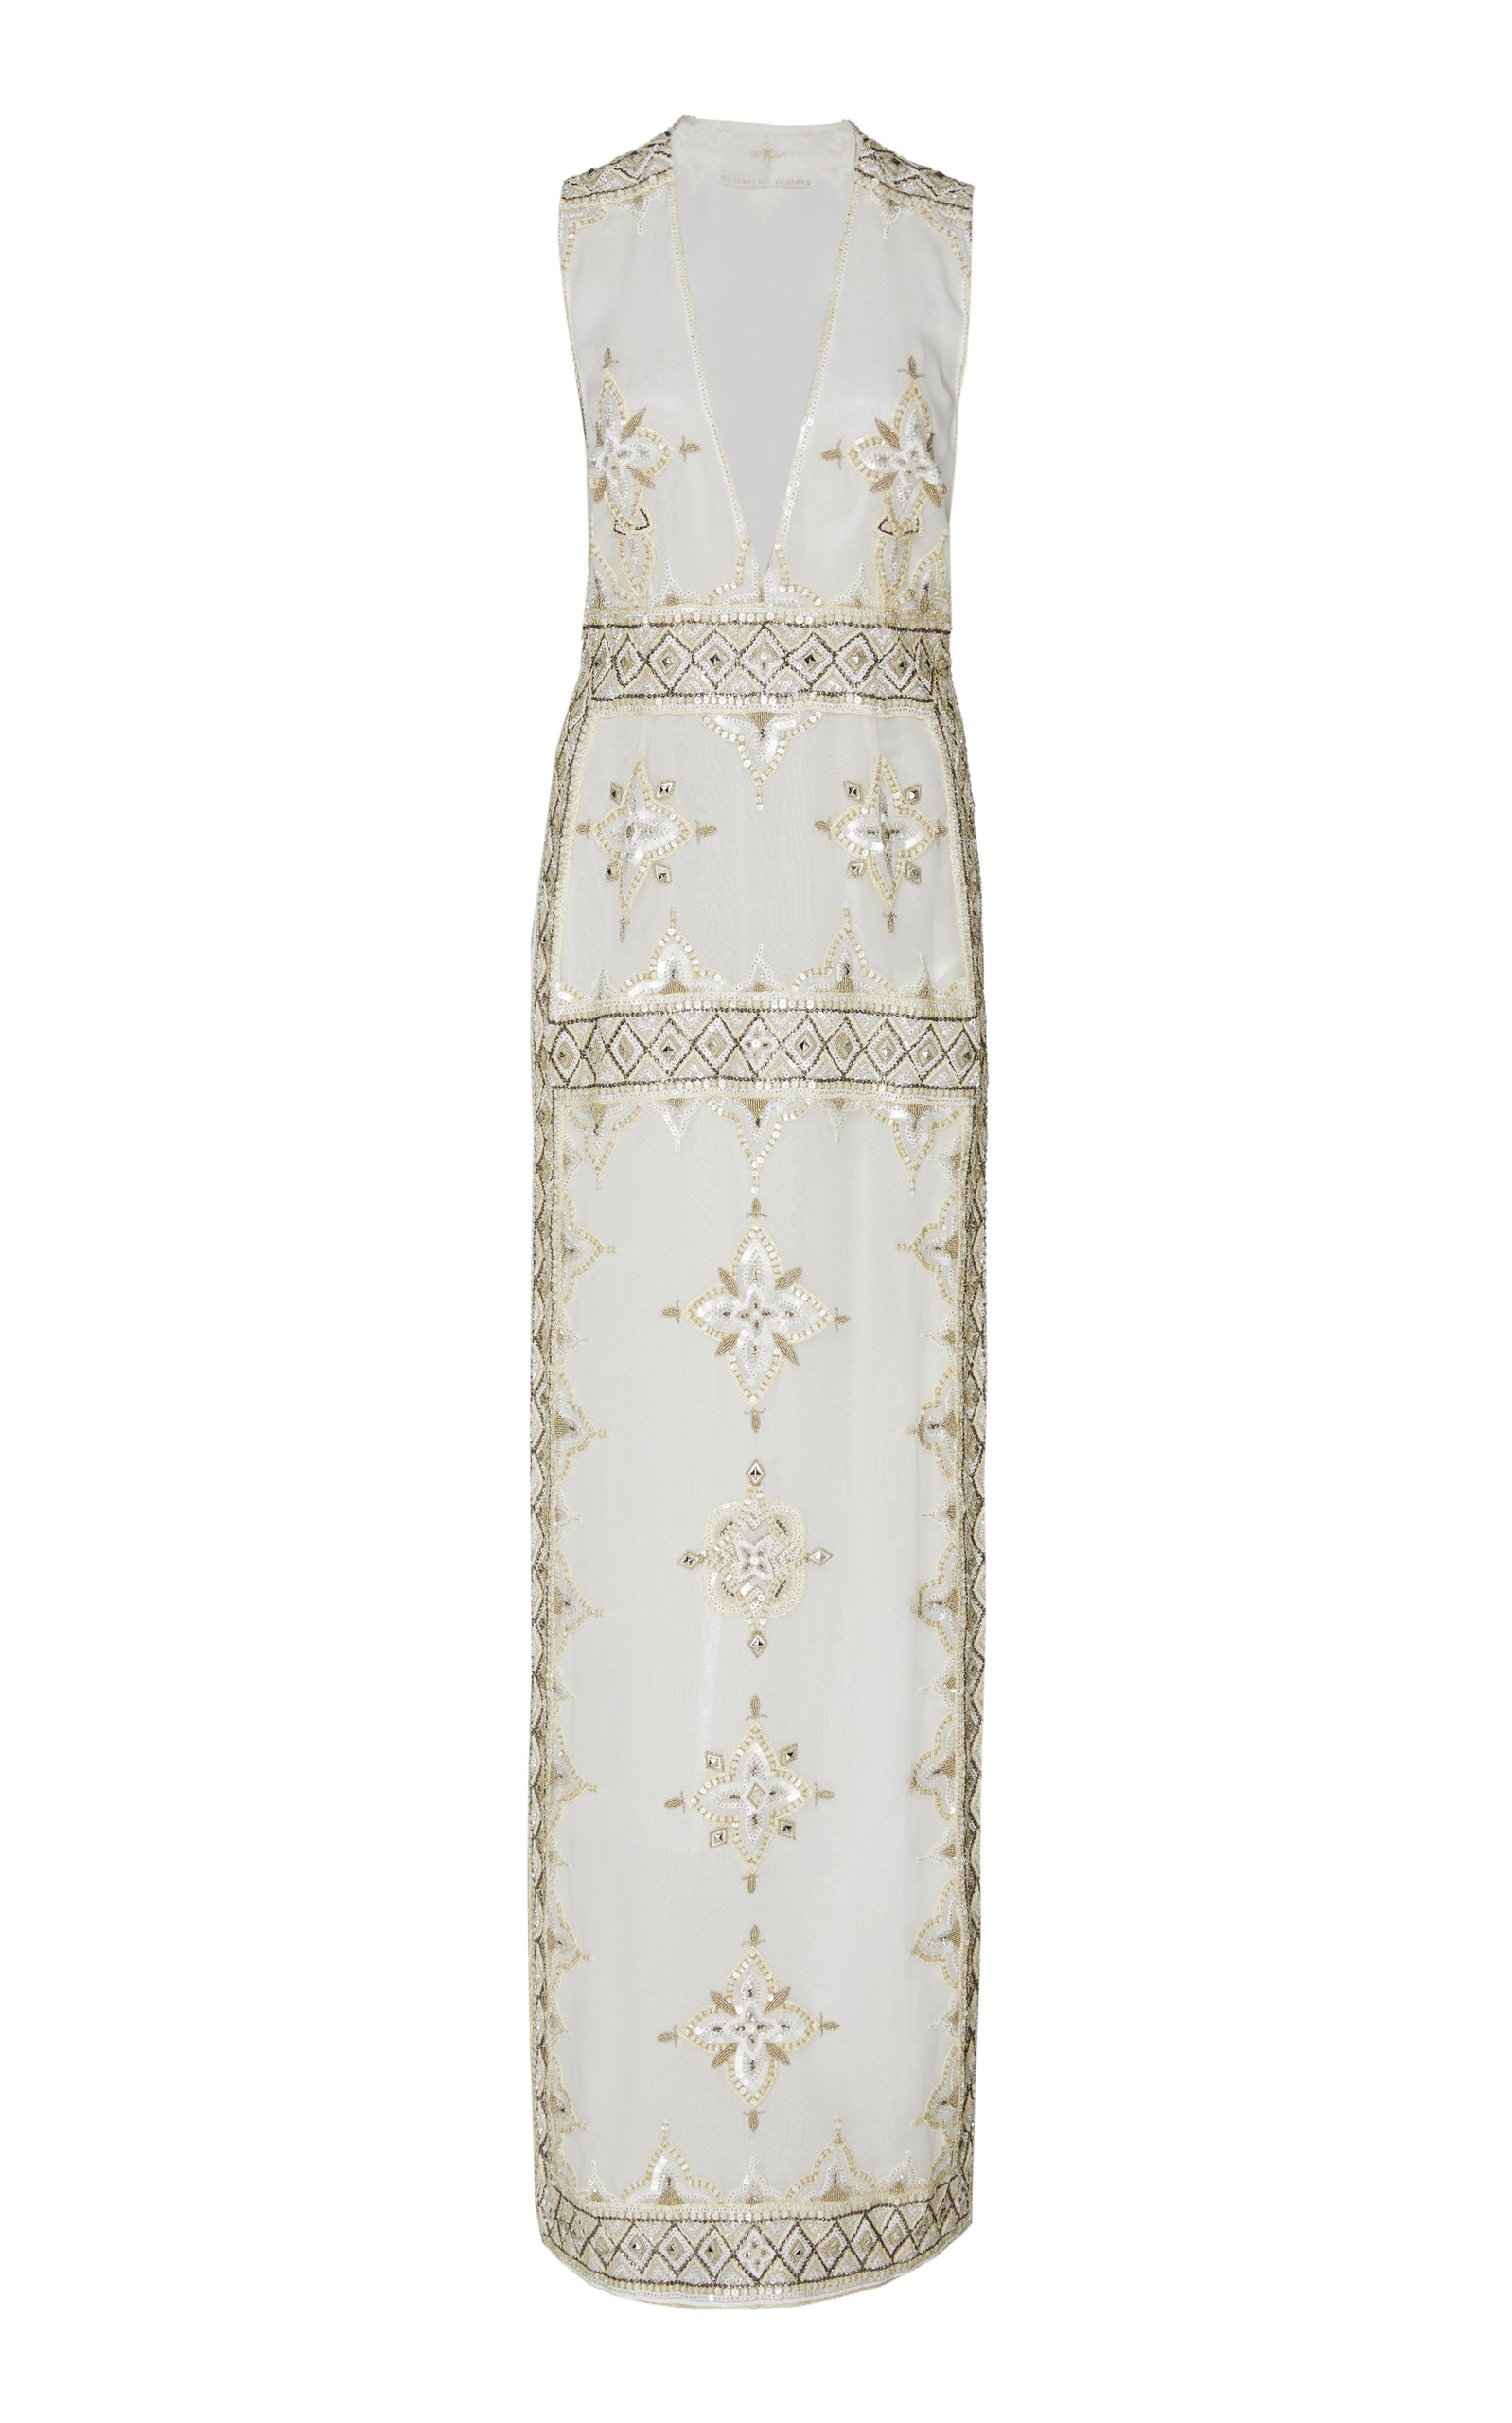 CUCCULELLI SHAHEEN Pearlescent Silk Gown in White